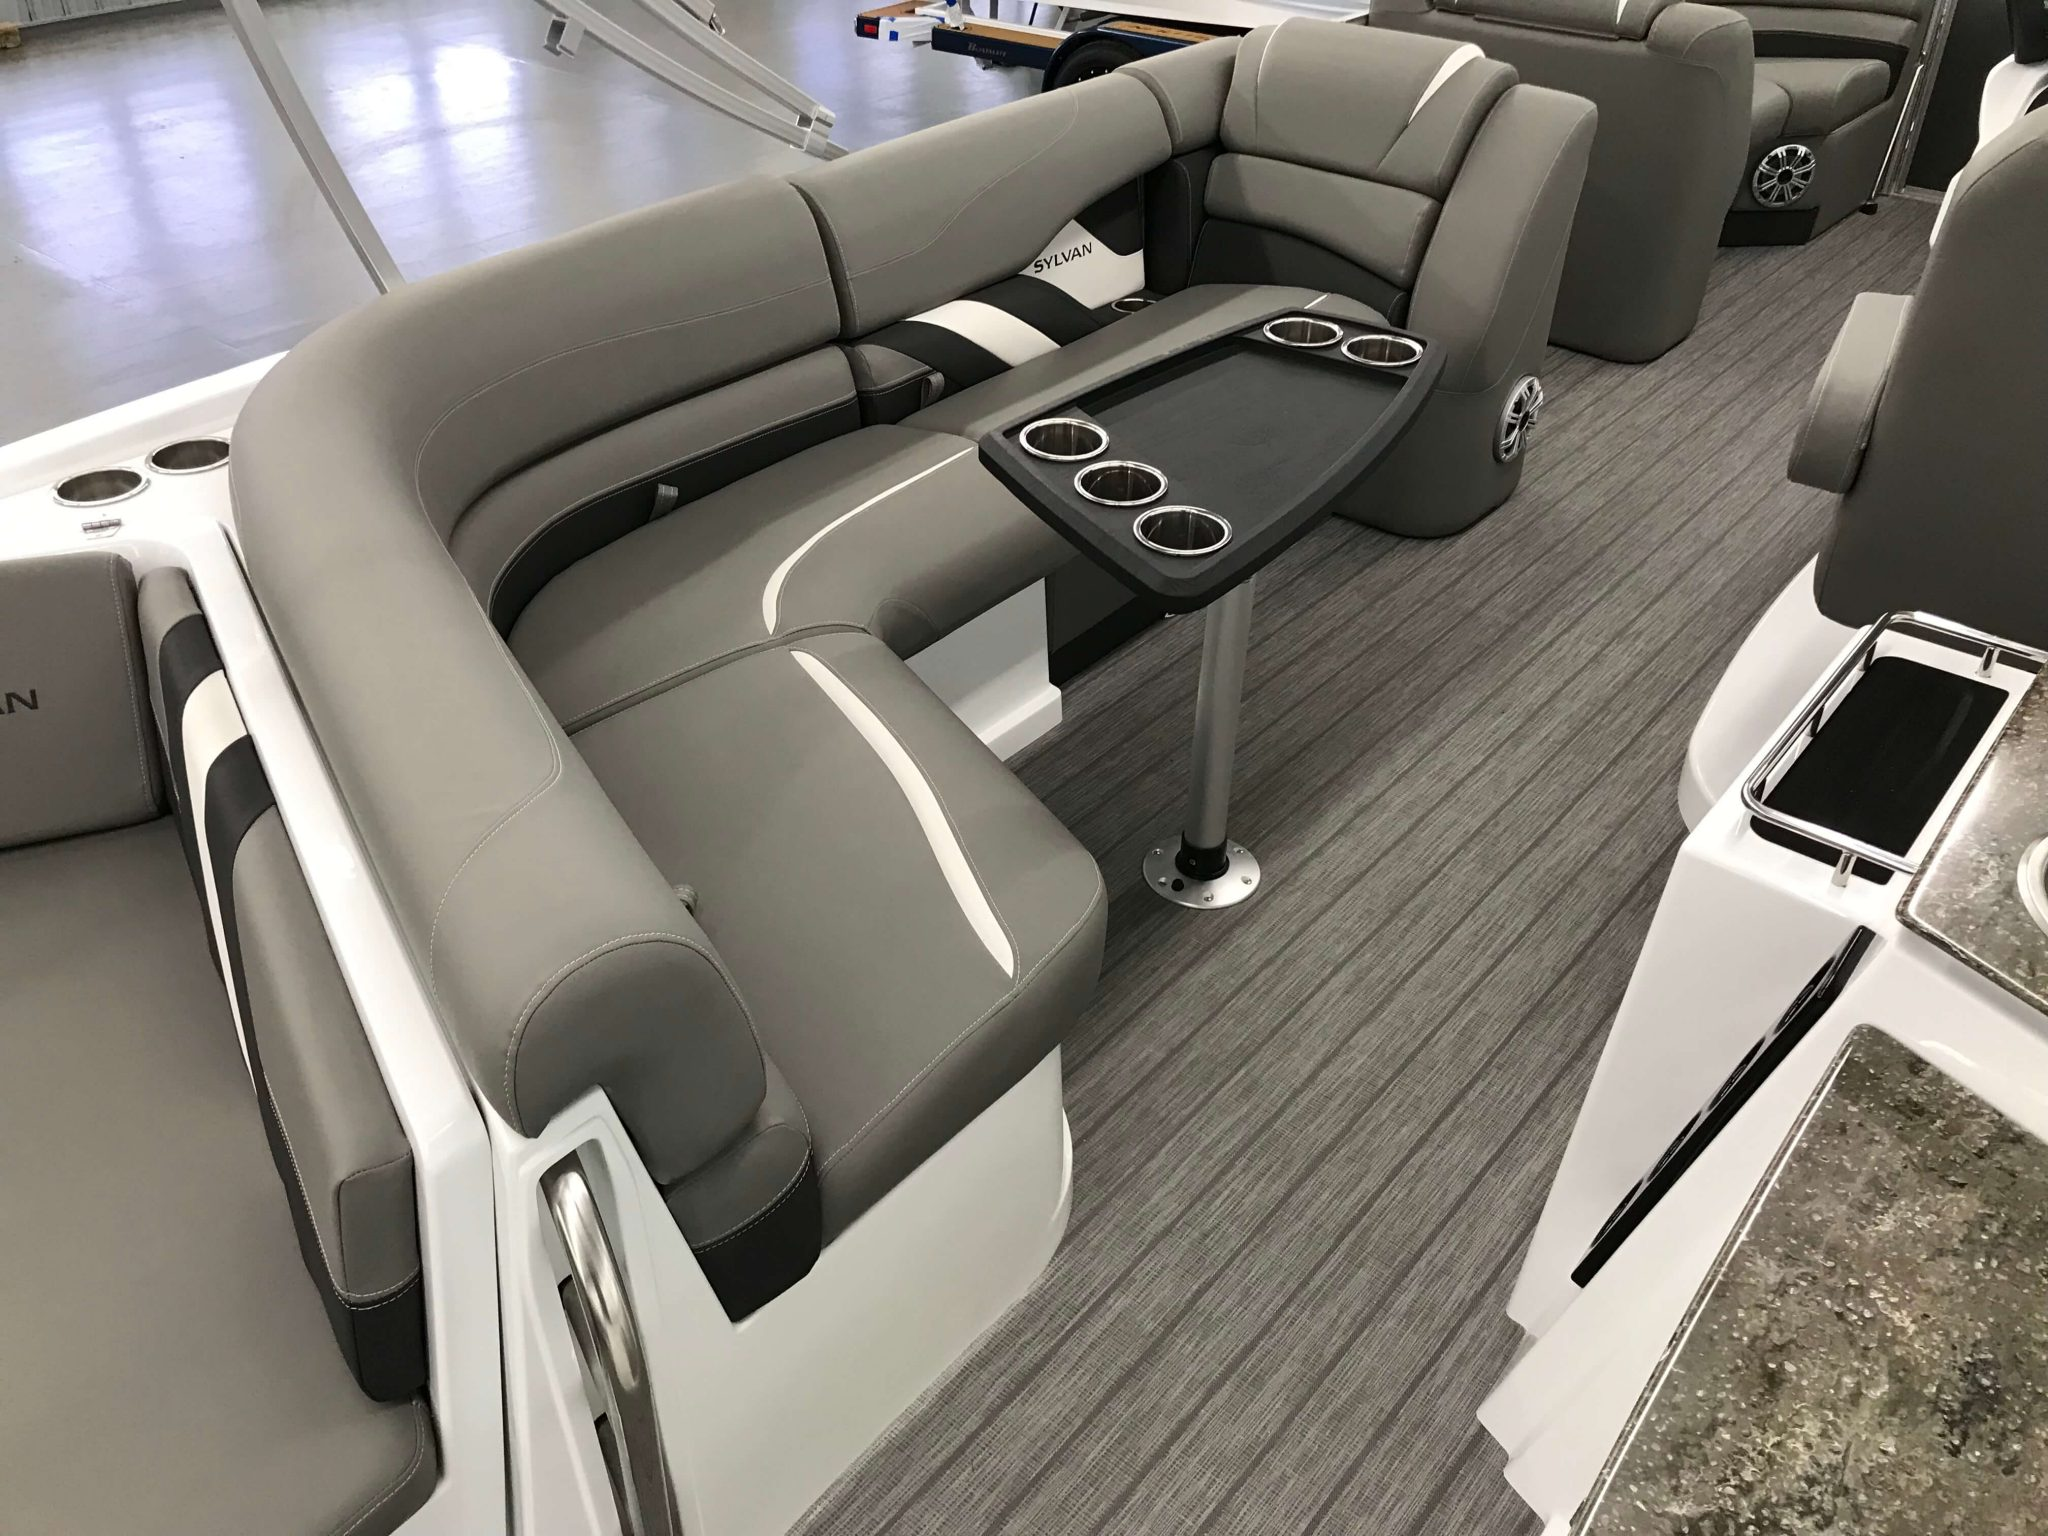 2019 Sylvan S3 Cruise Tritoon Cruise Seating Layout